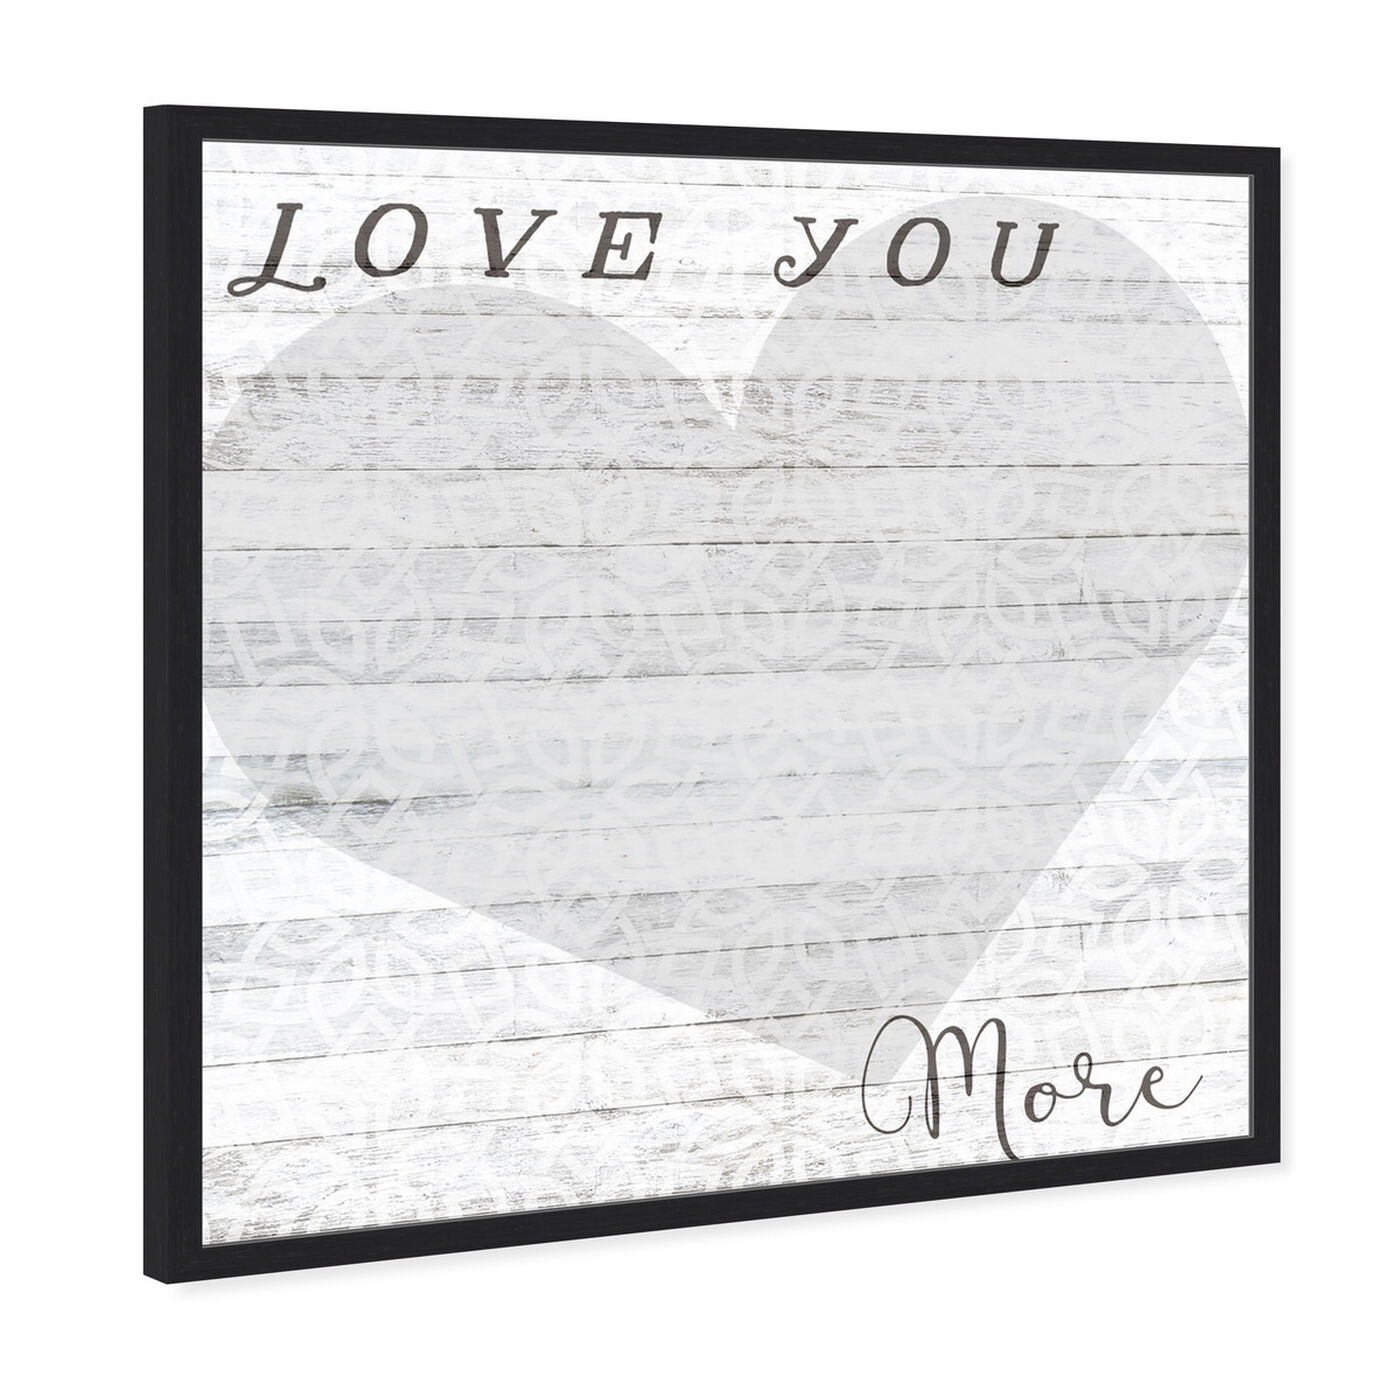 Angled view of Love You More Whiteboard featuring typography and quotes and love quotes and sayings art.